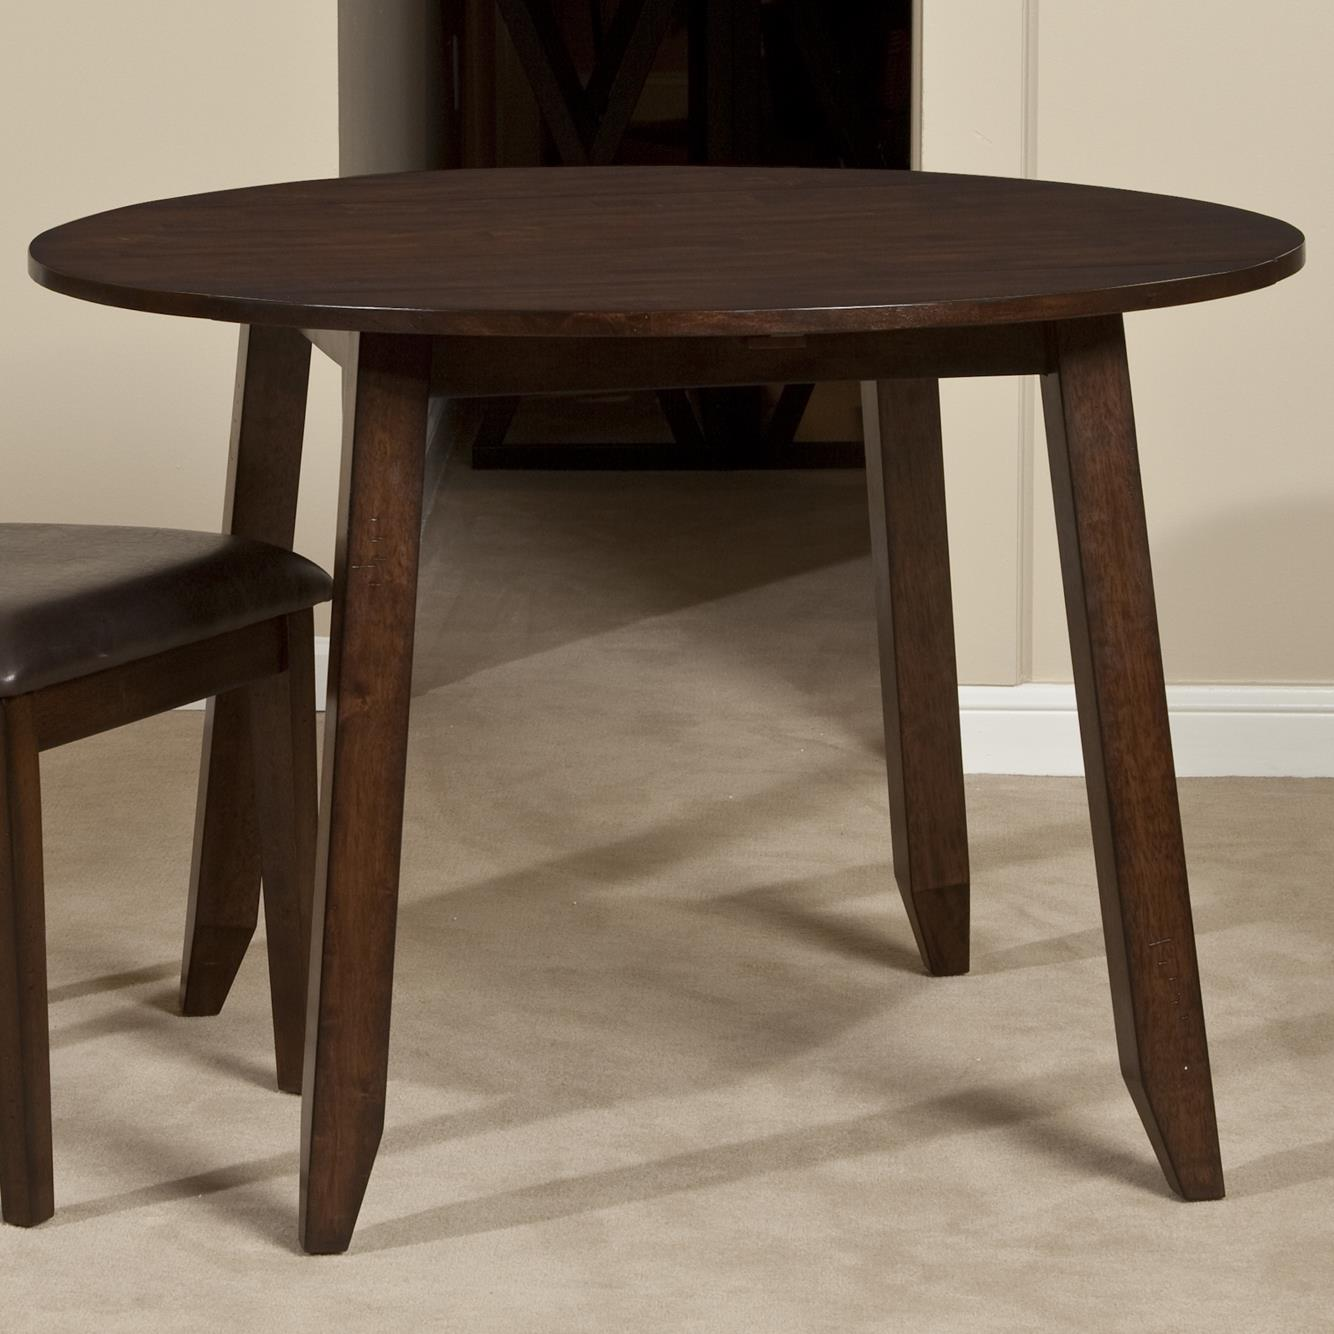 Cedar Round Log Dining Table Real Wood And 50 Similar Items: Belfort Select Cabin Creek Wooden Round Top Drop Leaf